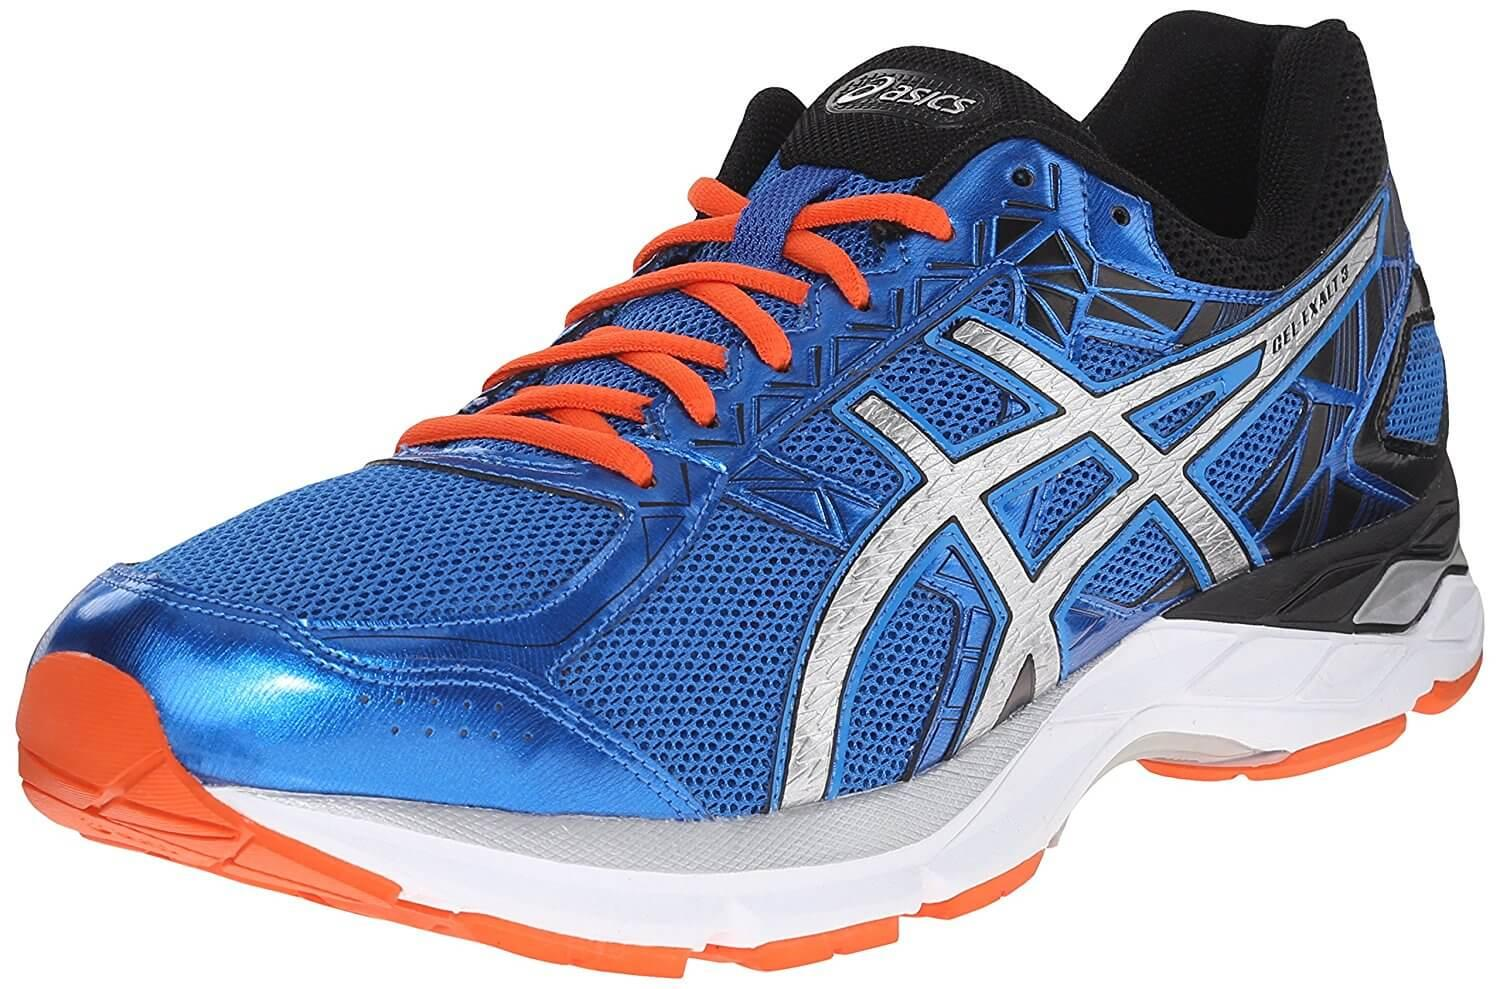 An in depth review of the ASICS Gel Exalt 3 ...